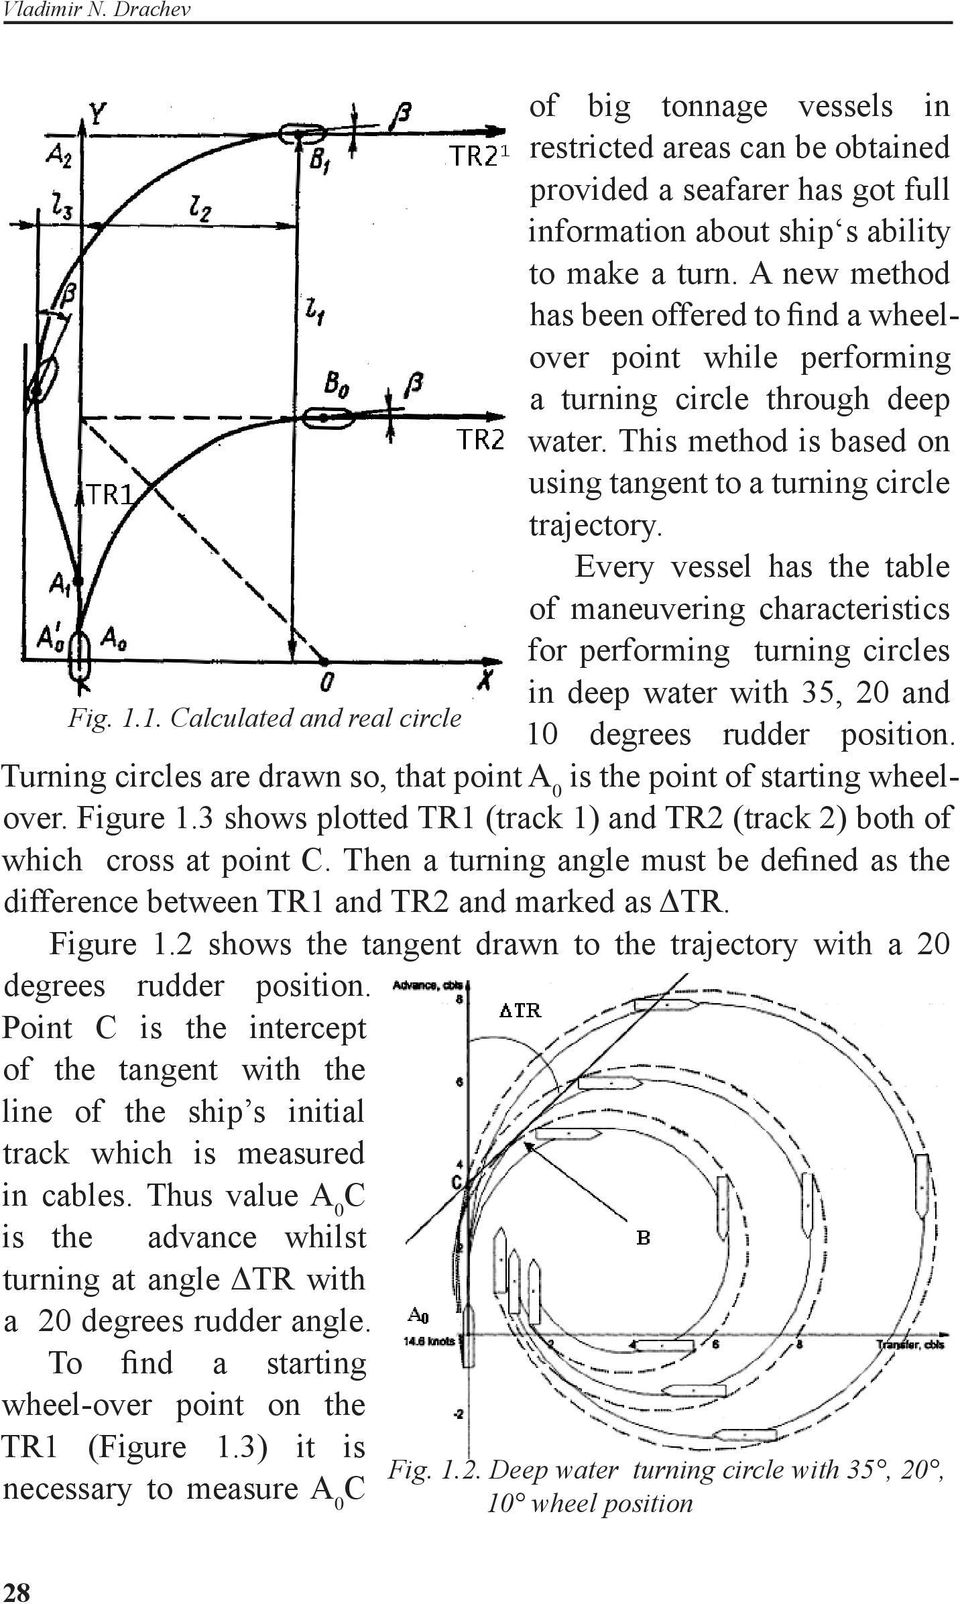 Every vessel has the table of maneuvering characteristics for performing turning circles in deep water with 35, 20 and Fig. 1.1. Calculated and real circle 10 degrees rudder position.